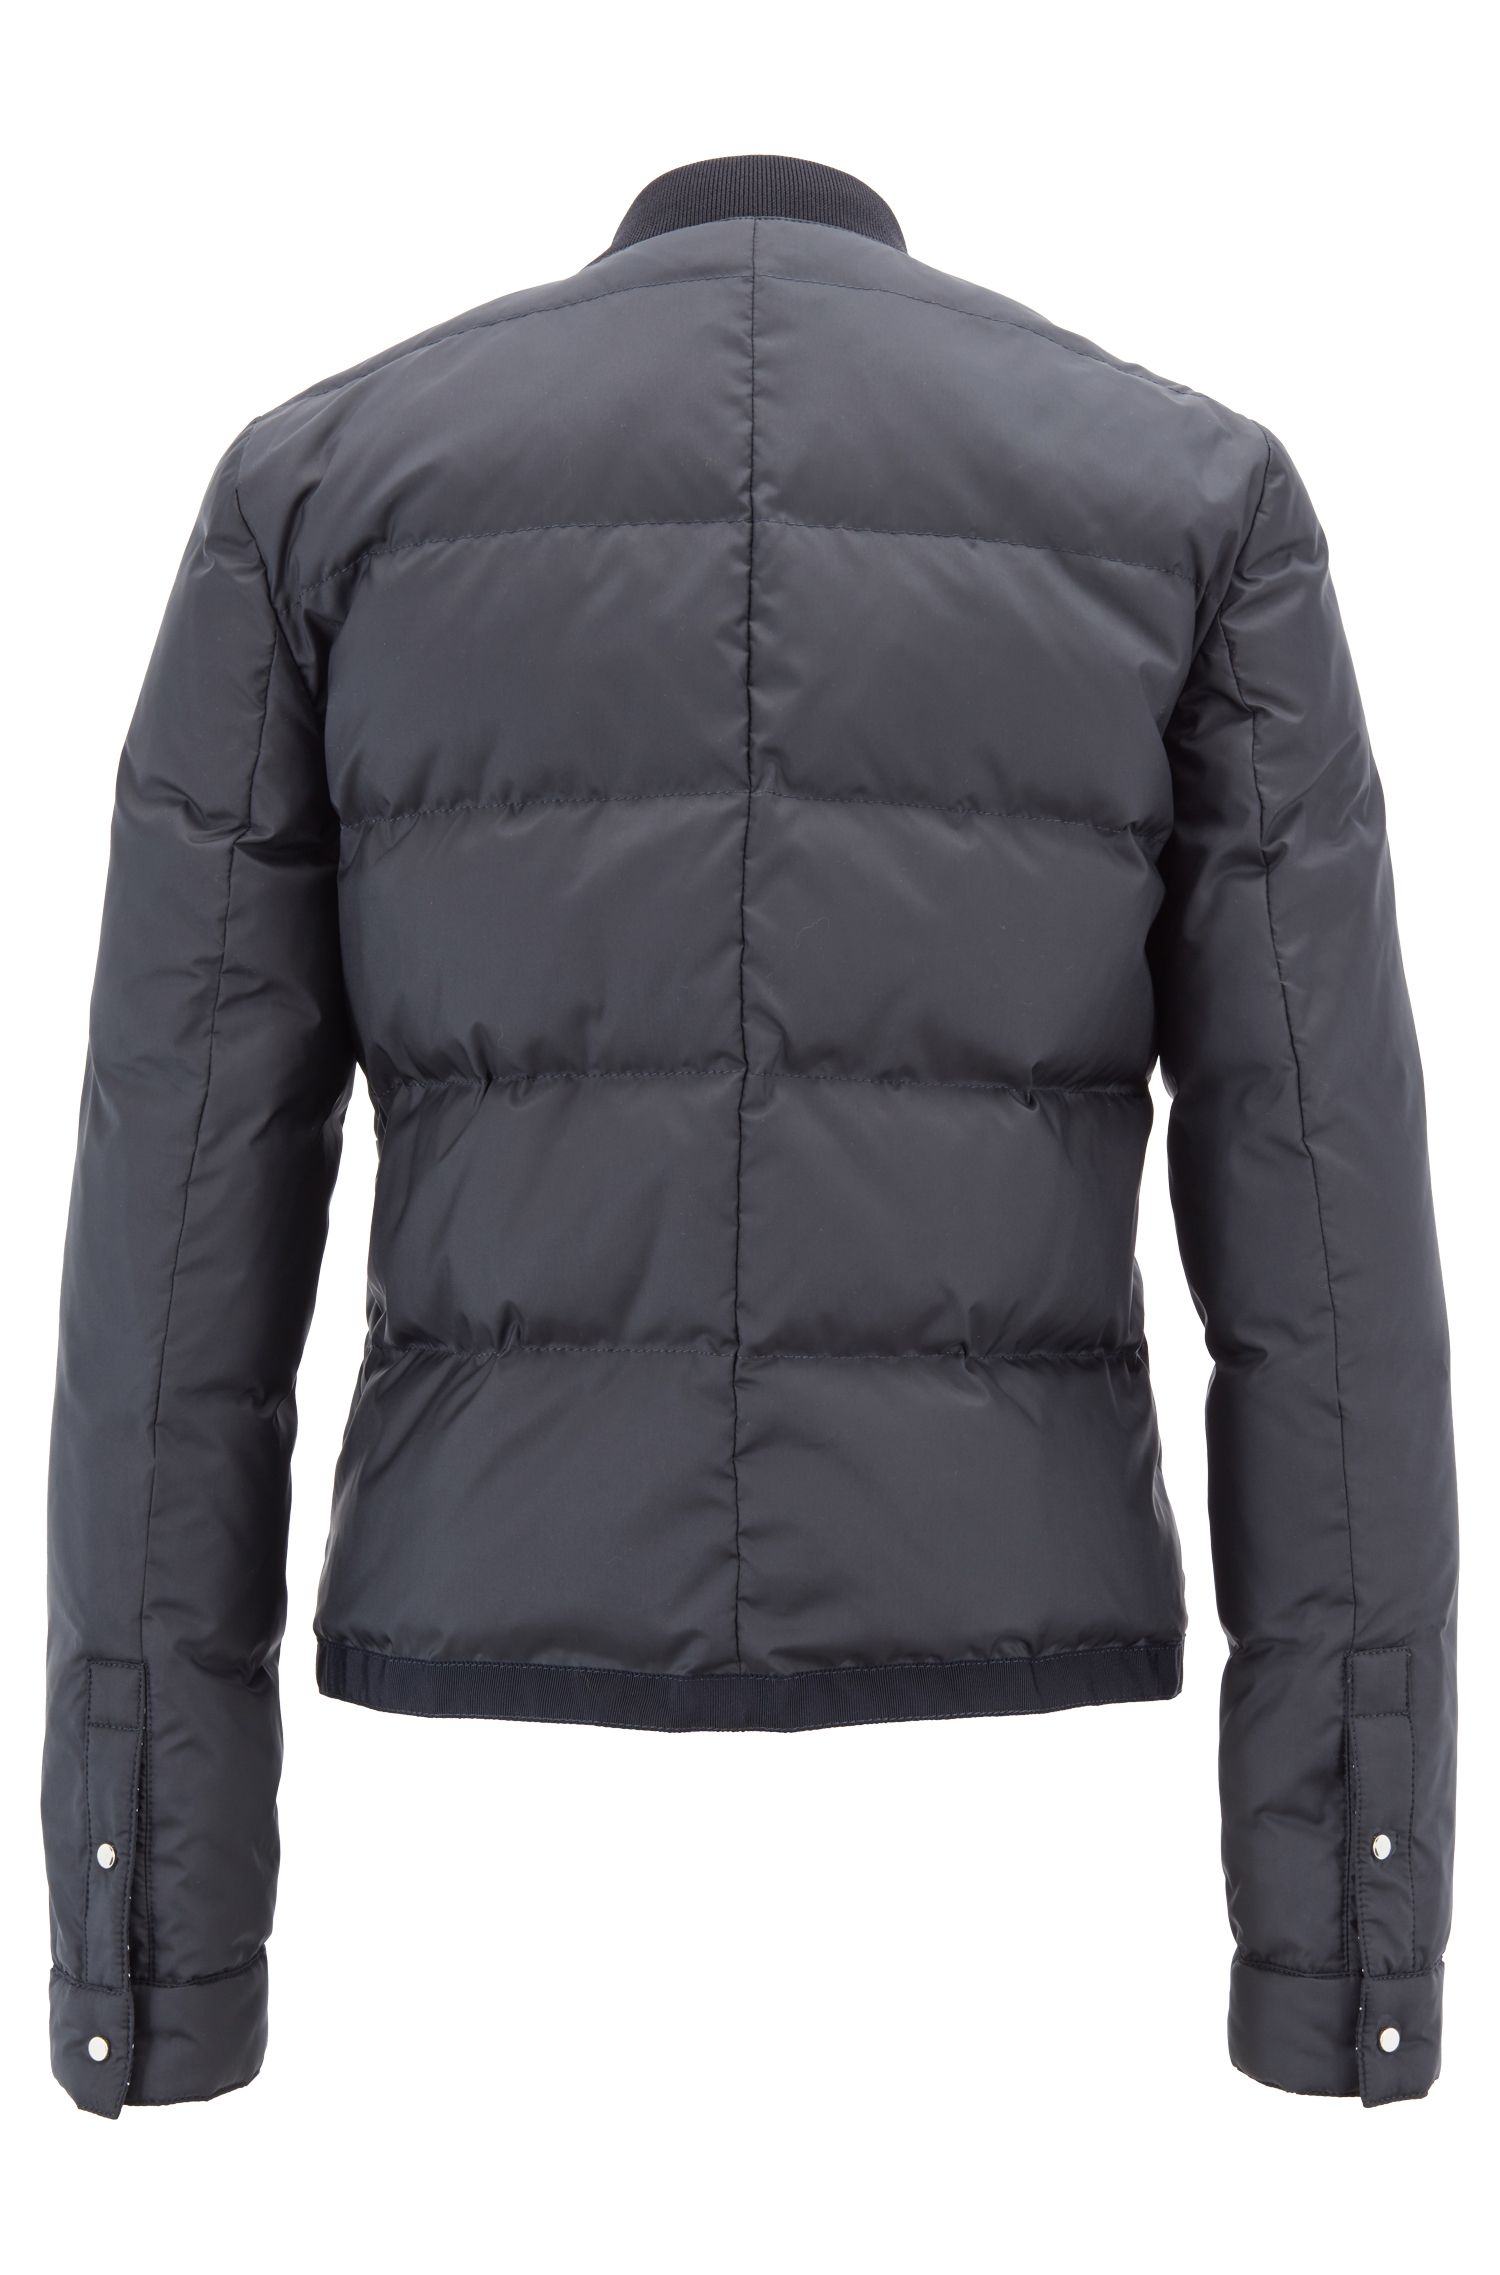 Down-filled bomber jacket with water-repellent outer